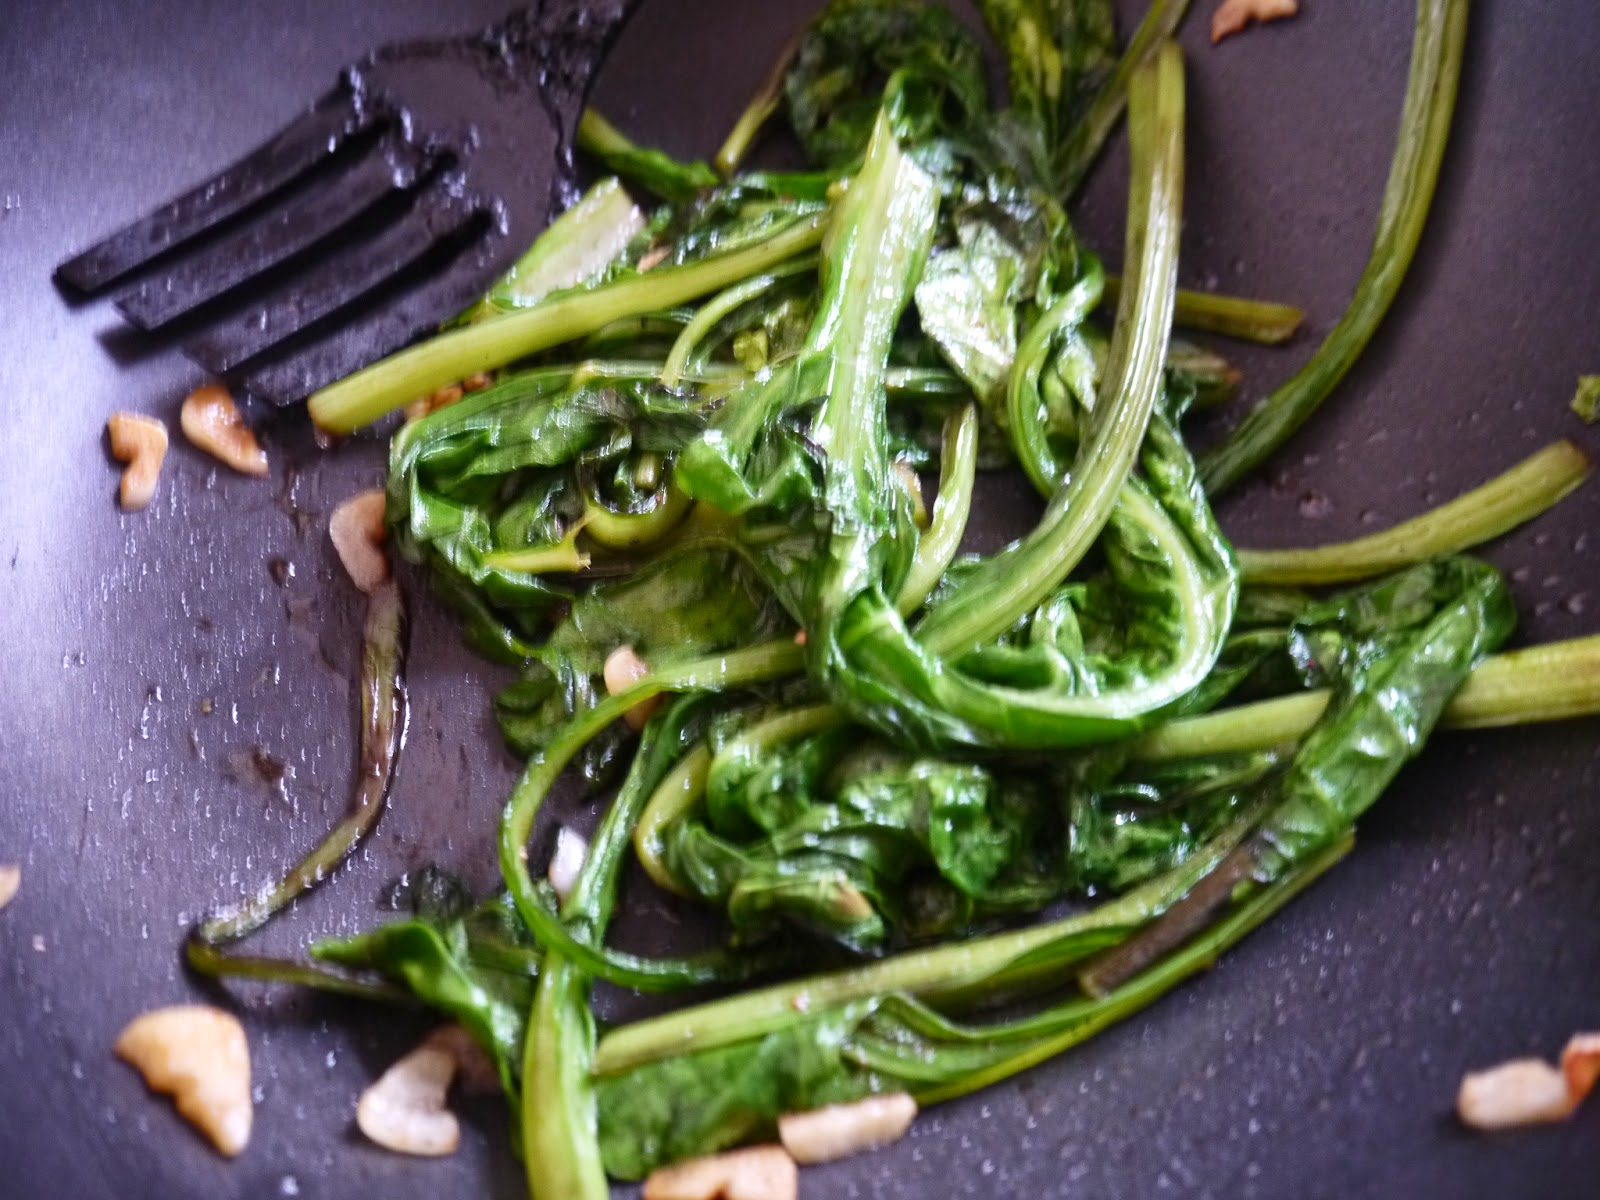 Quick and easy Asian style chard recipe by Appetit Voyage